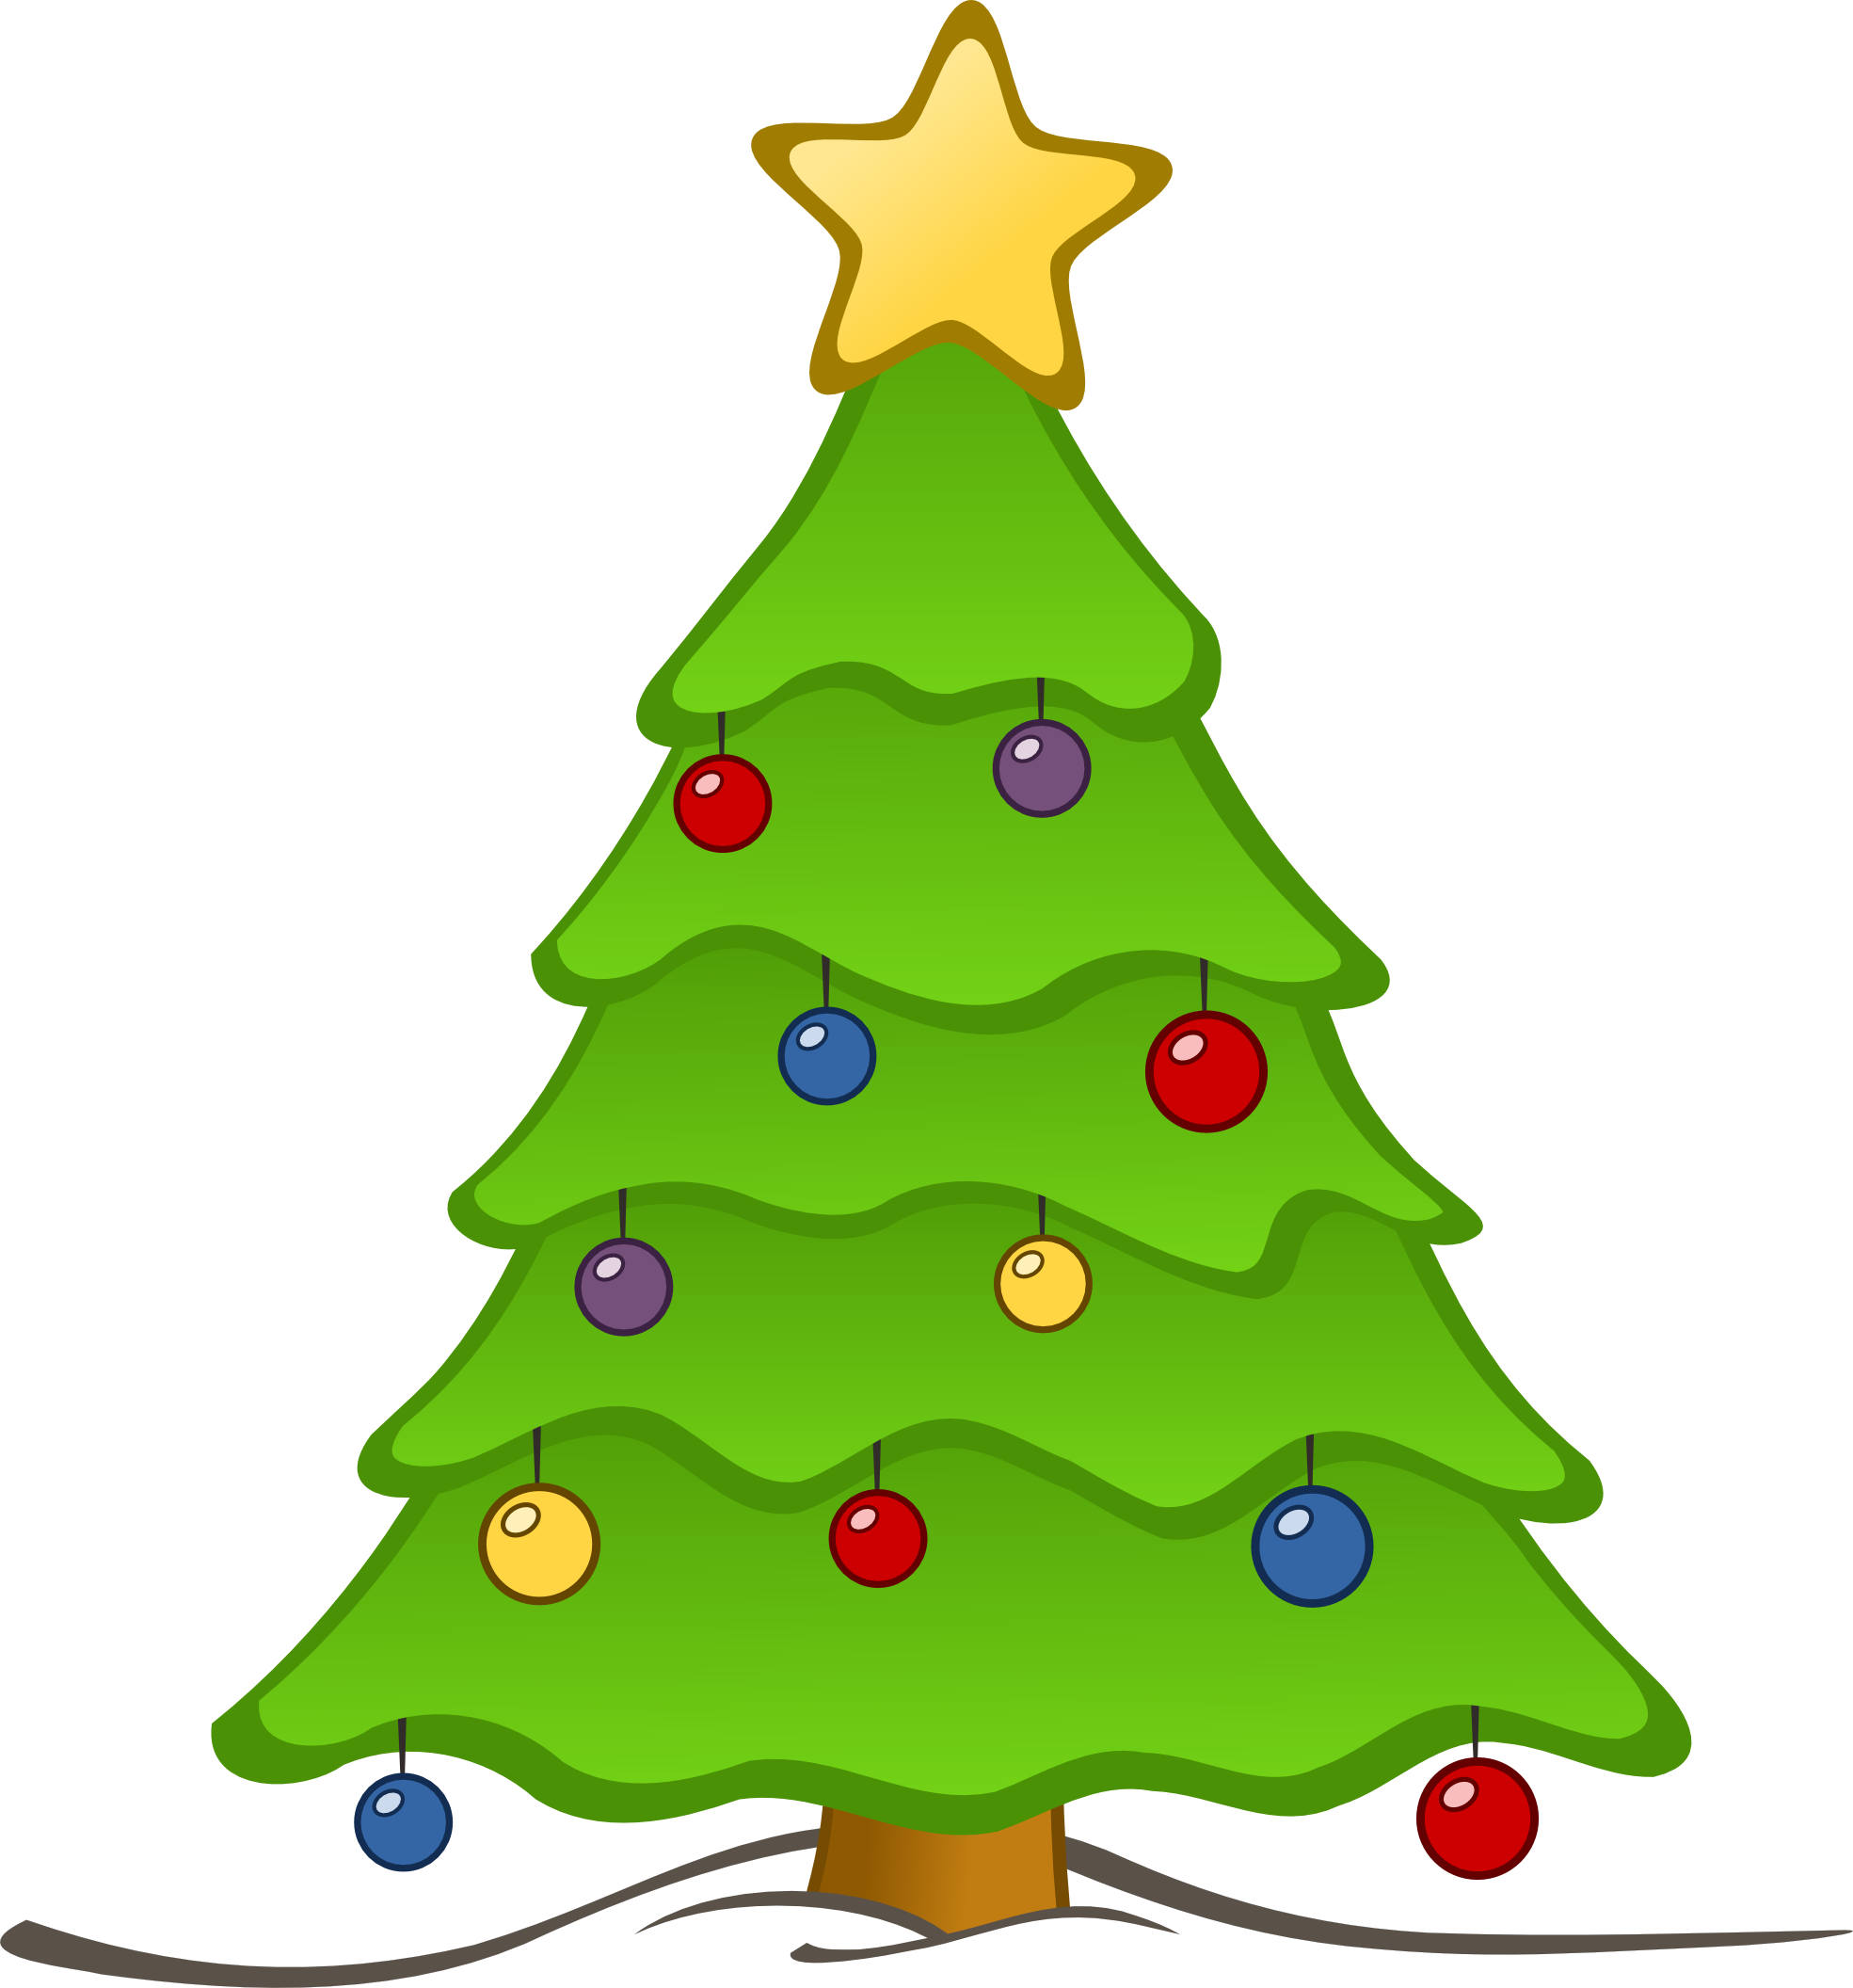 Fancy christmas tree clipart png library Christmas tree artwork clipart - ClipartFest png library